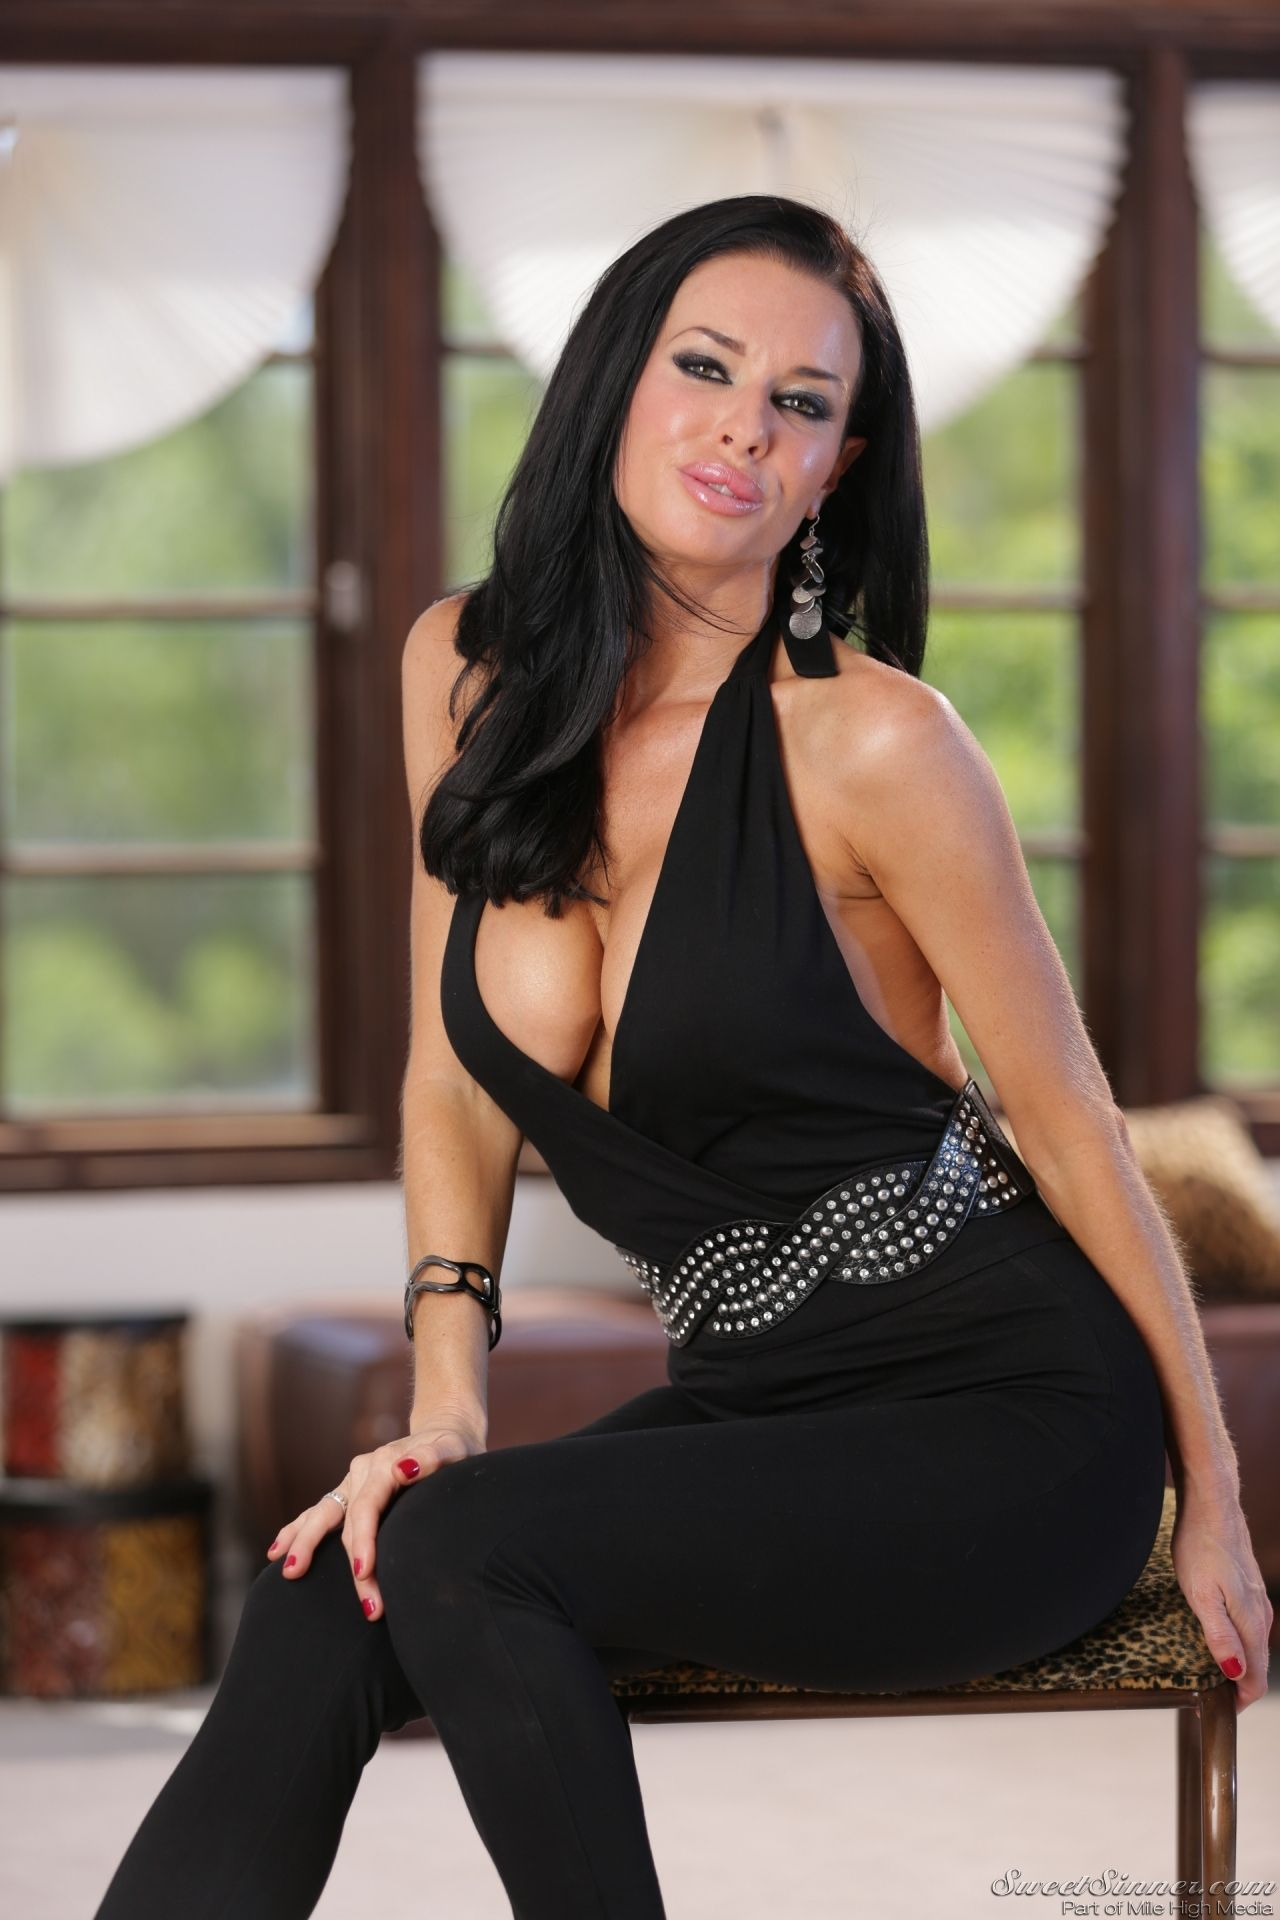 veronica avluv hd